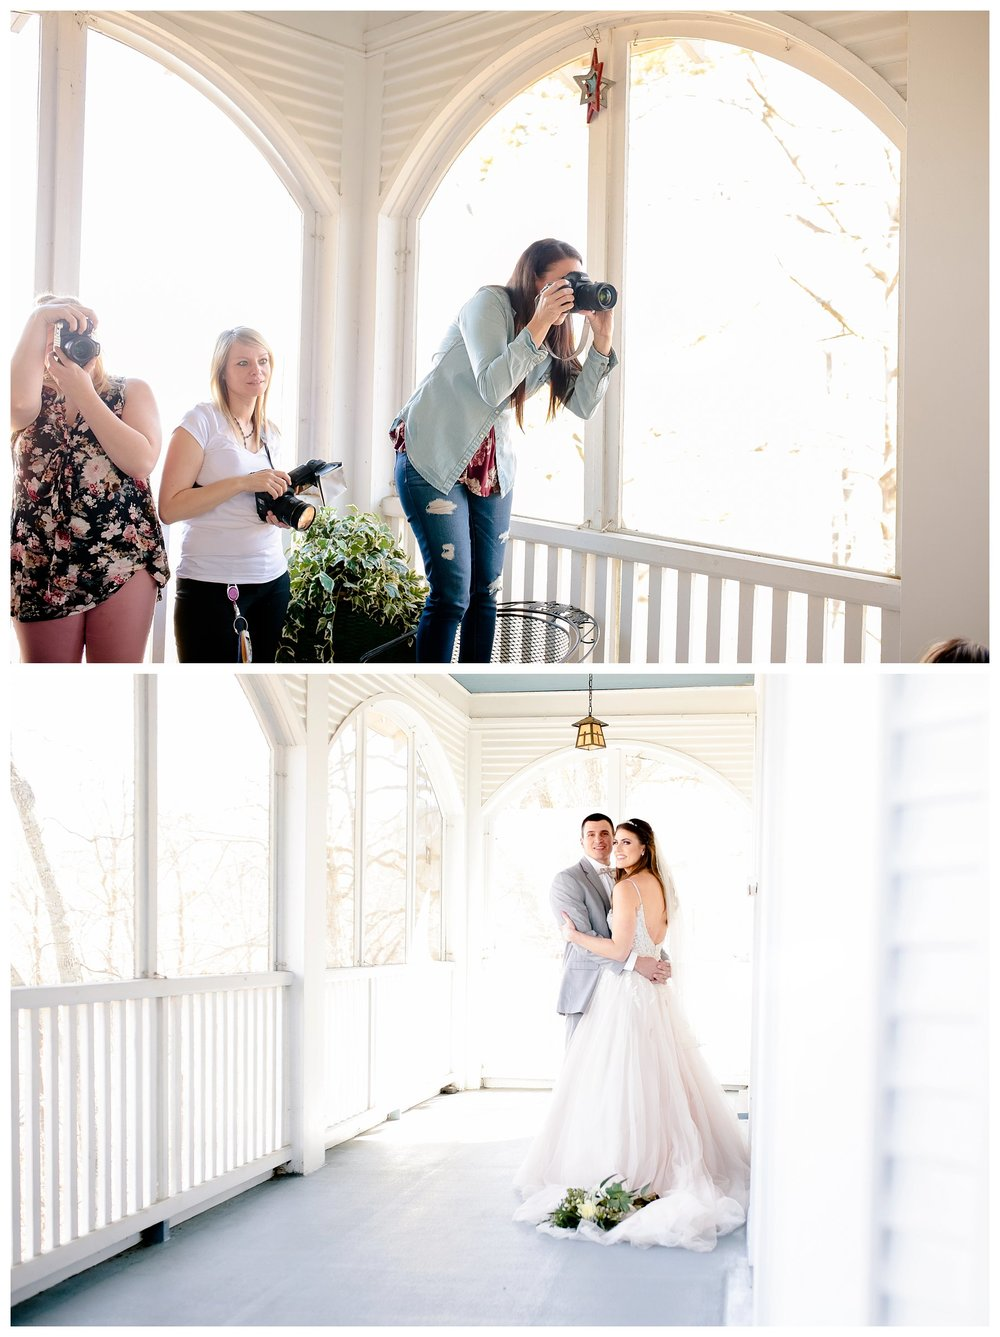 photographer_wedding_saint_louis_Kansas_City_Photography_Videography_workshop_training_styled_engagement_Lake_Ozark_KC_MO_STL_Rolla_Hermann_Saint_James_0365.jpg